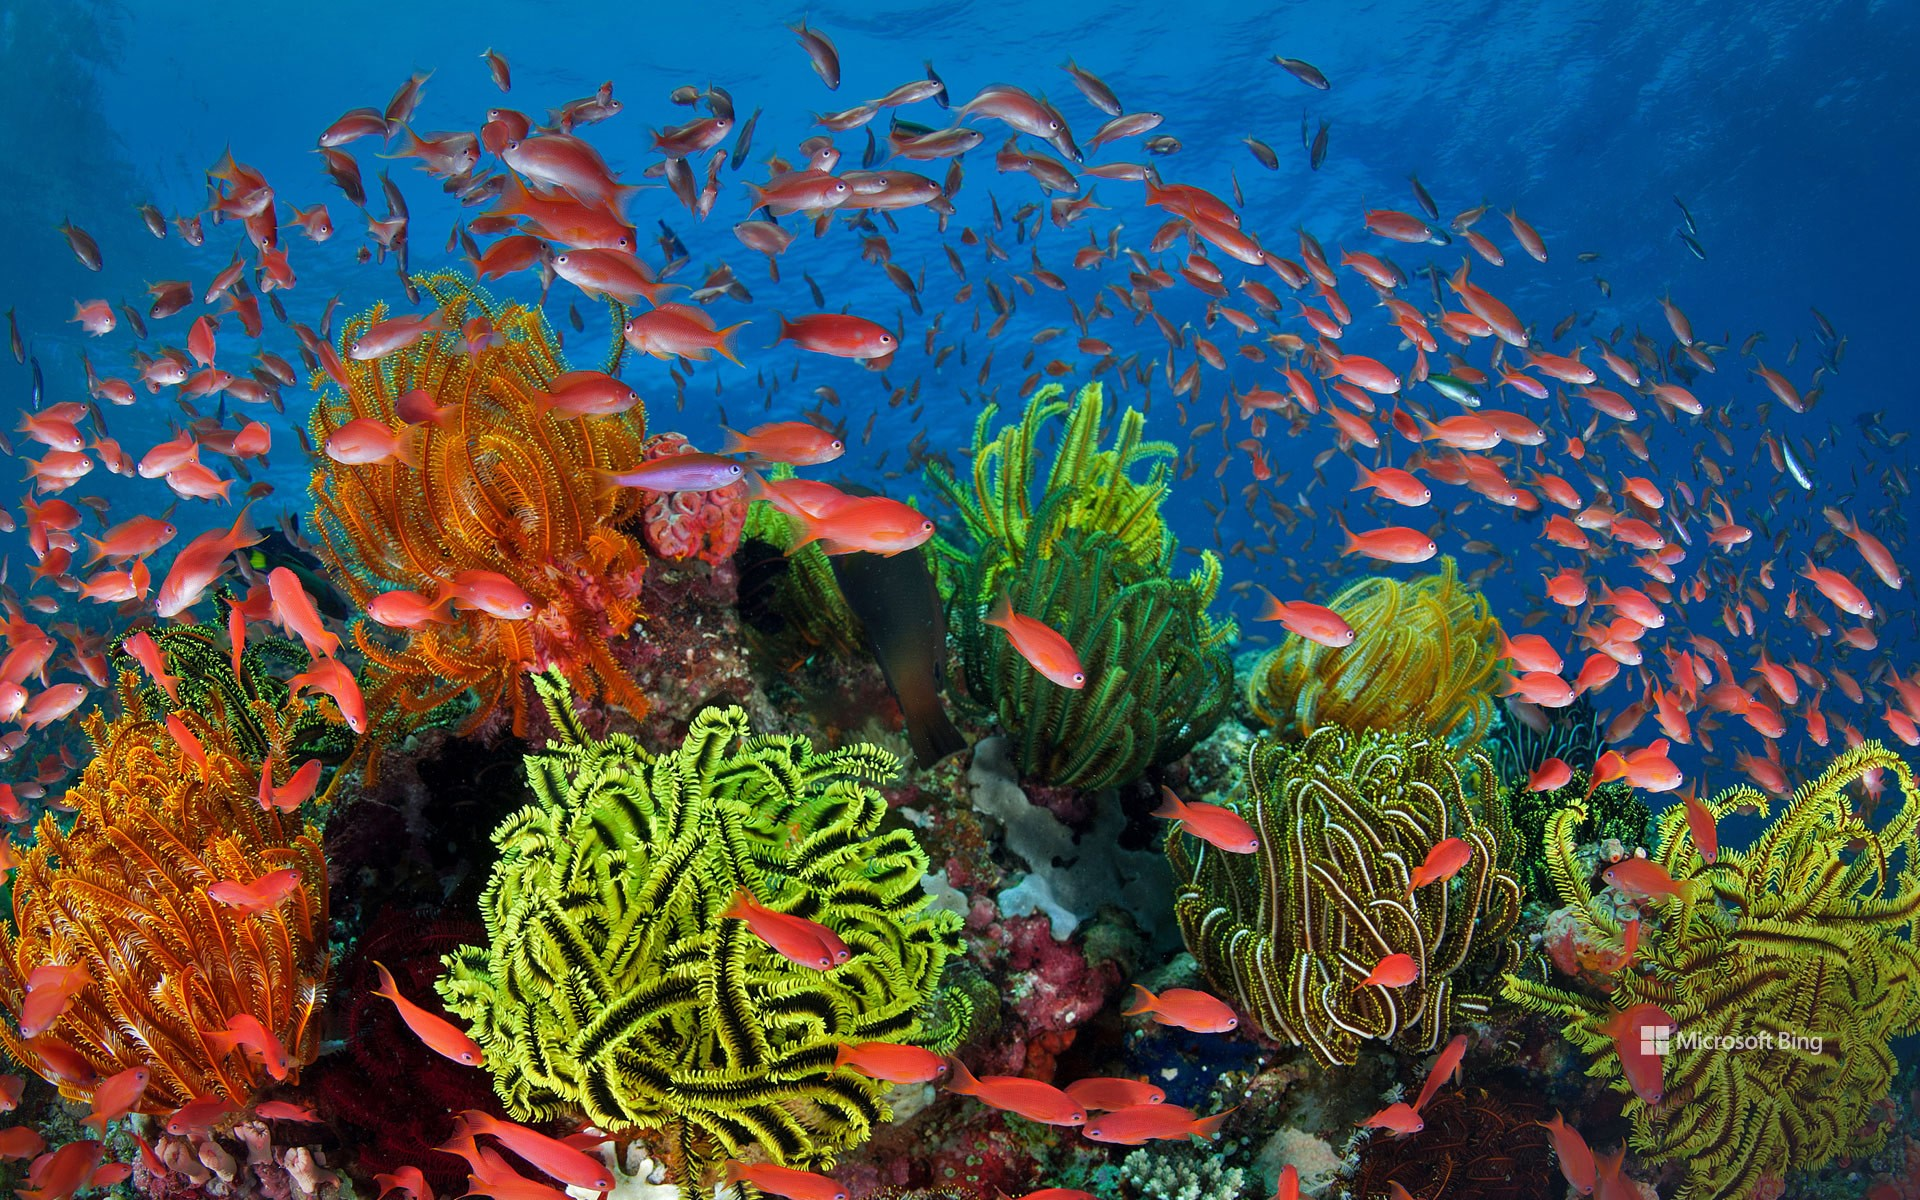 A shoal of Jeweled Anthias in a coral reef with hair stars, Great Barrier Reef, Queensland, Australia